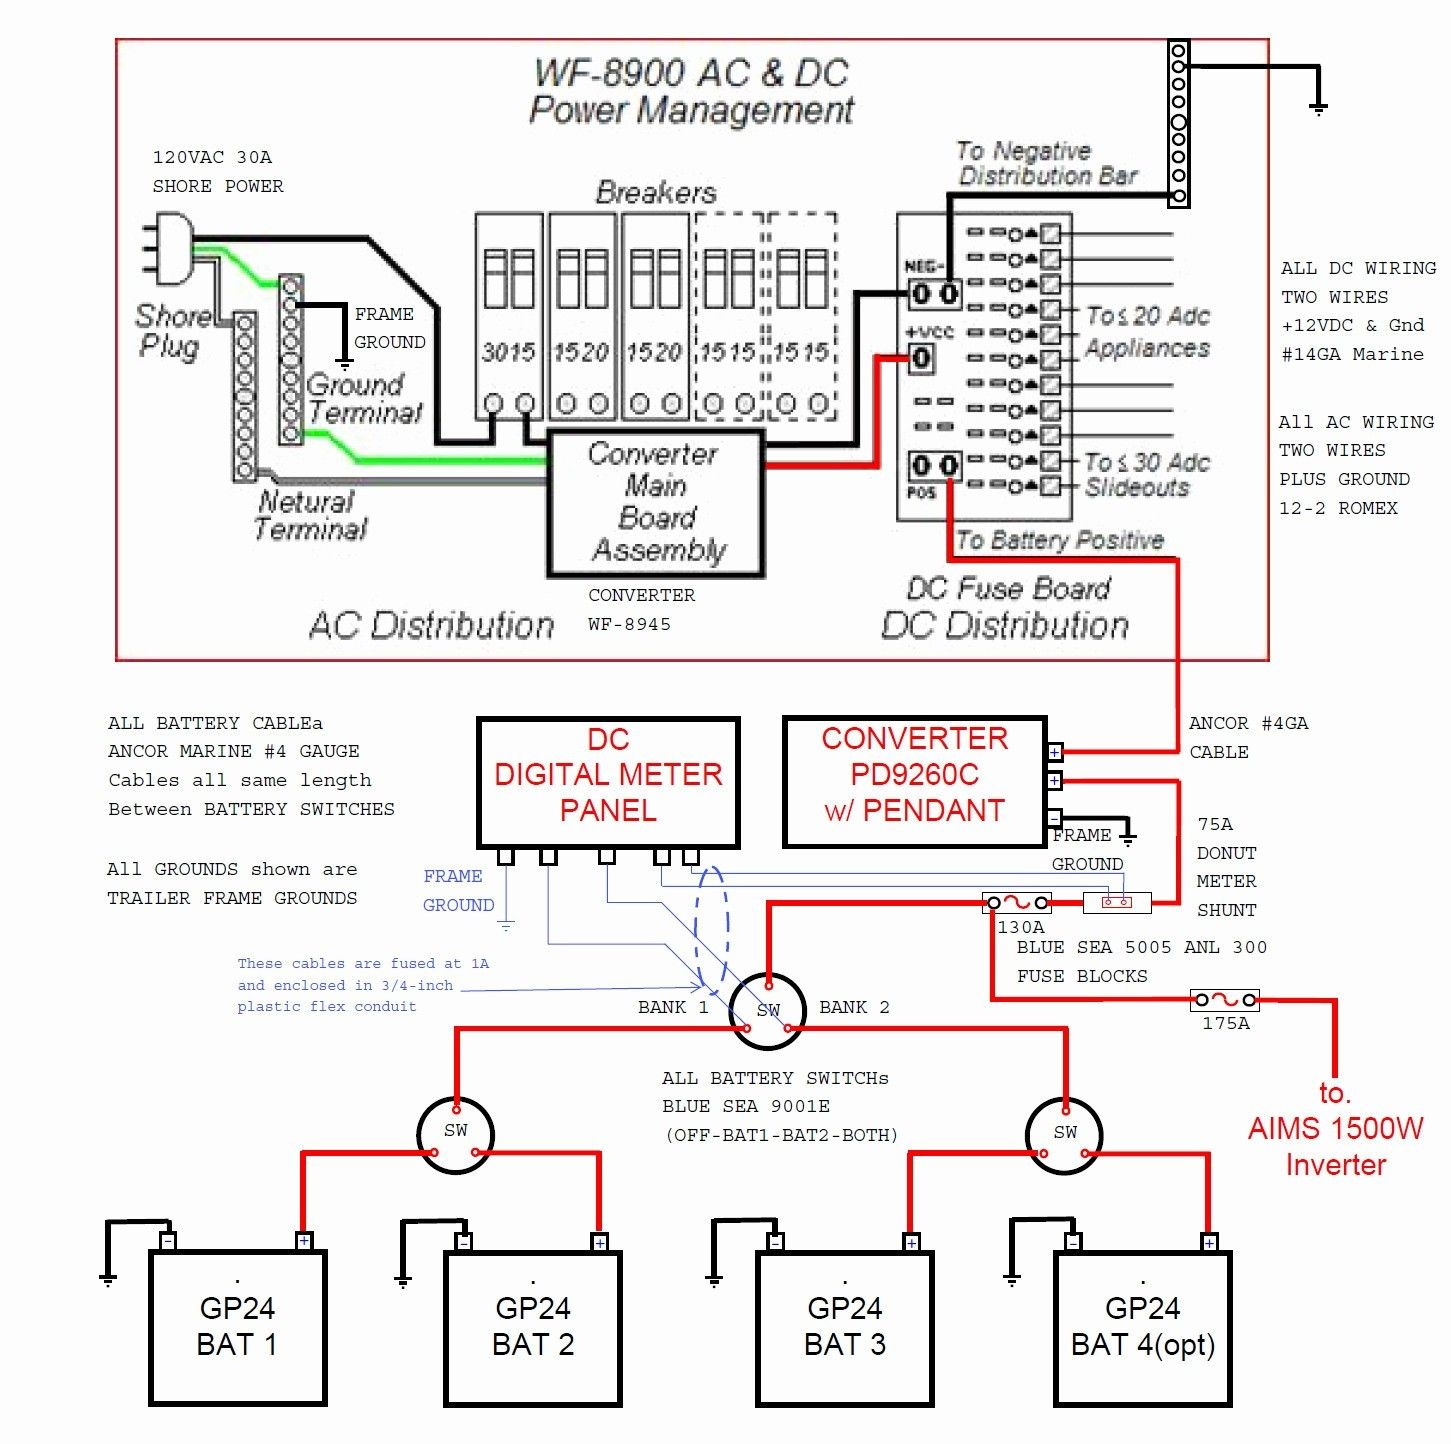 DIAGRAM] Dutchmen Rv Wiring Diagram FULL Version HD Quality Wiring Diagram  - OLENGINE.PRIMOCIRCOLOSPOLETO.ITprimocircolospoleto.it